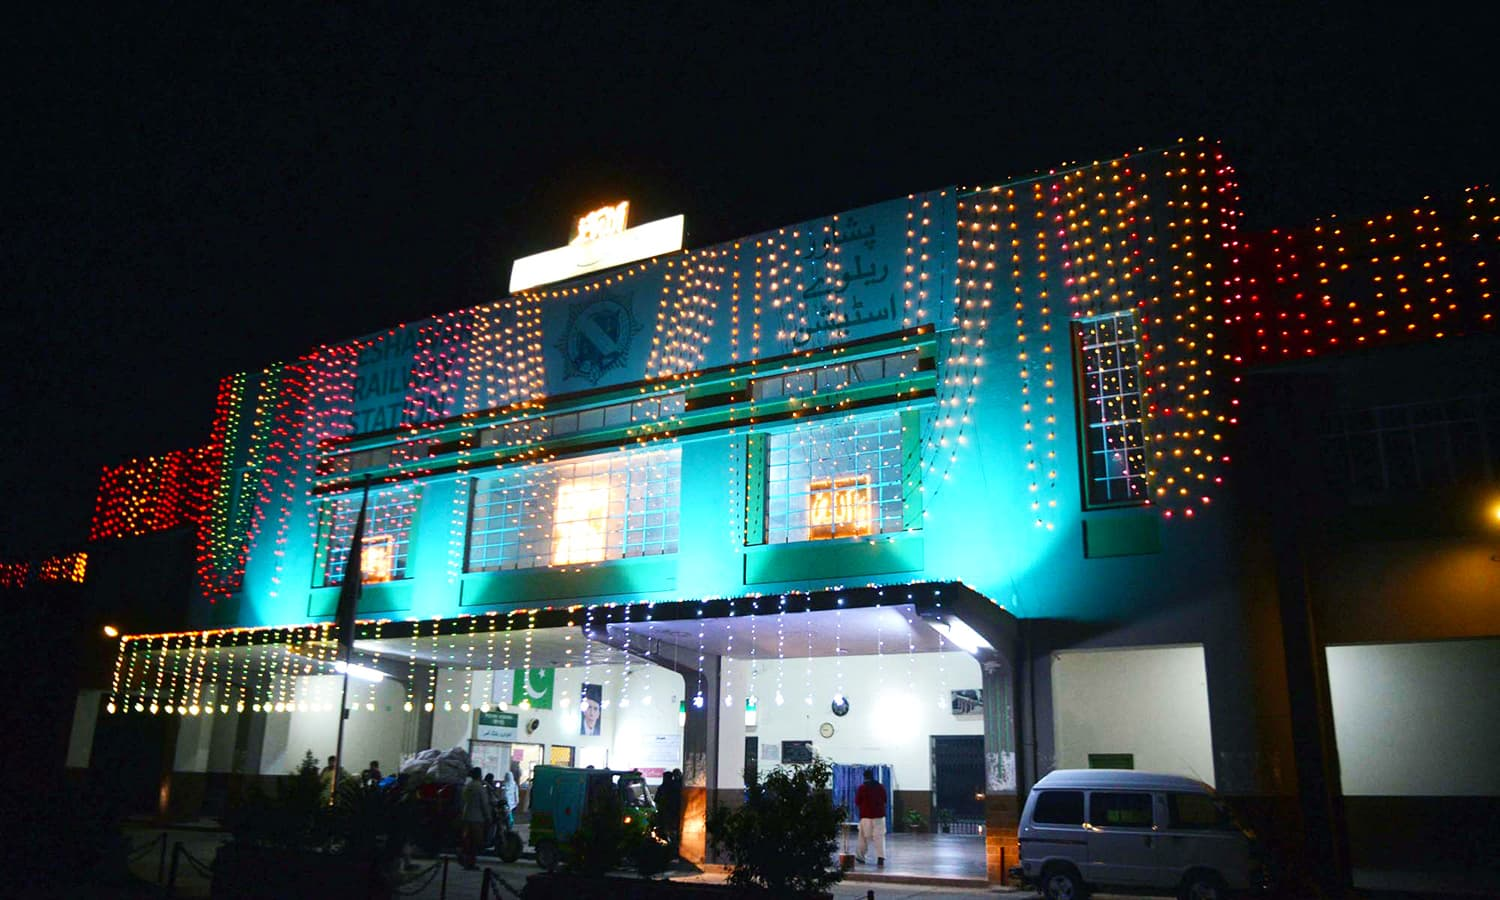 A view of Peshawar's Cantt Railway Station, that has been illuminated ahead of Eid-i-Miladun Nabi. — APP